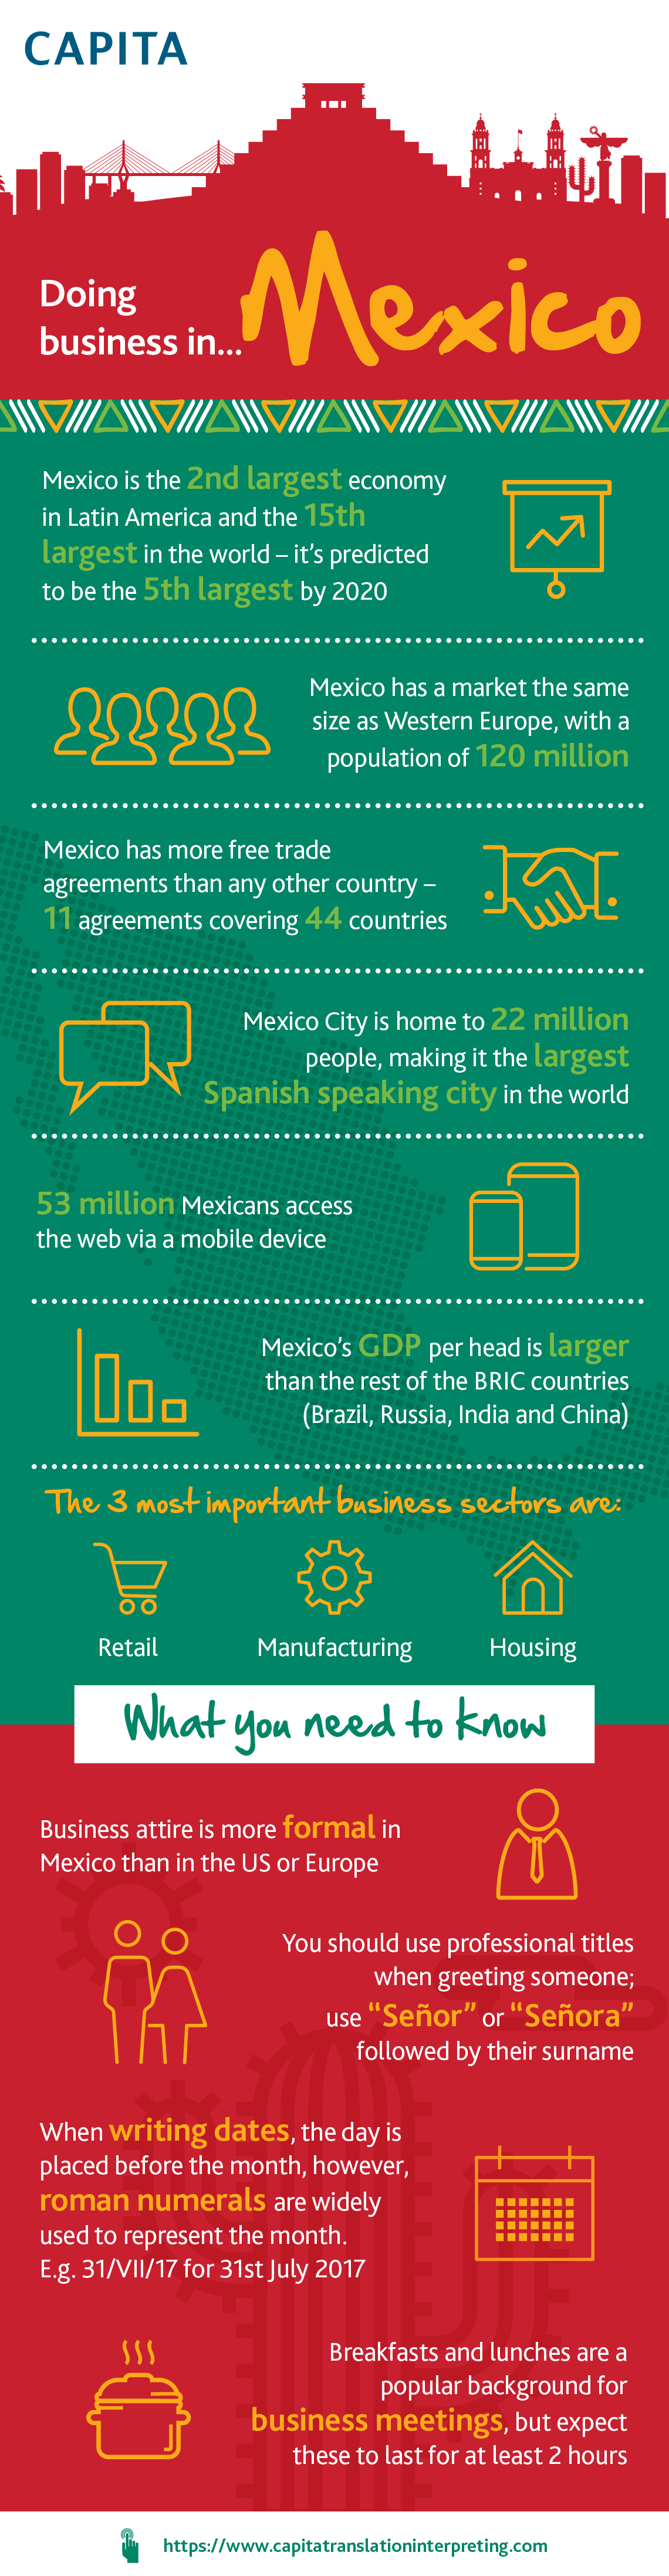 Doing business in Mexico infographic